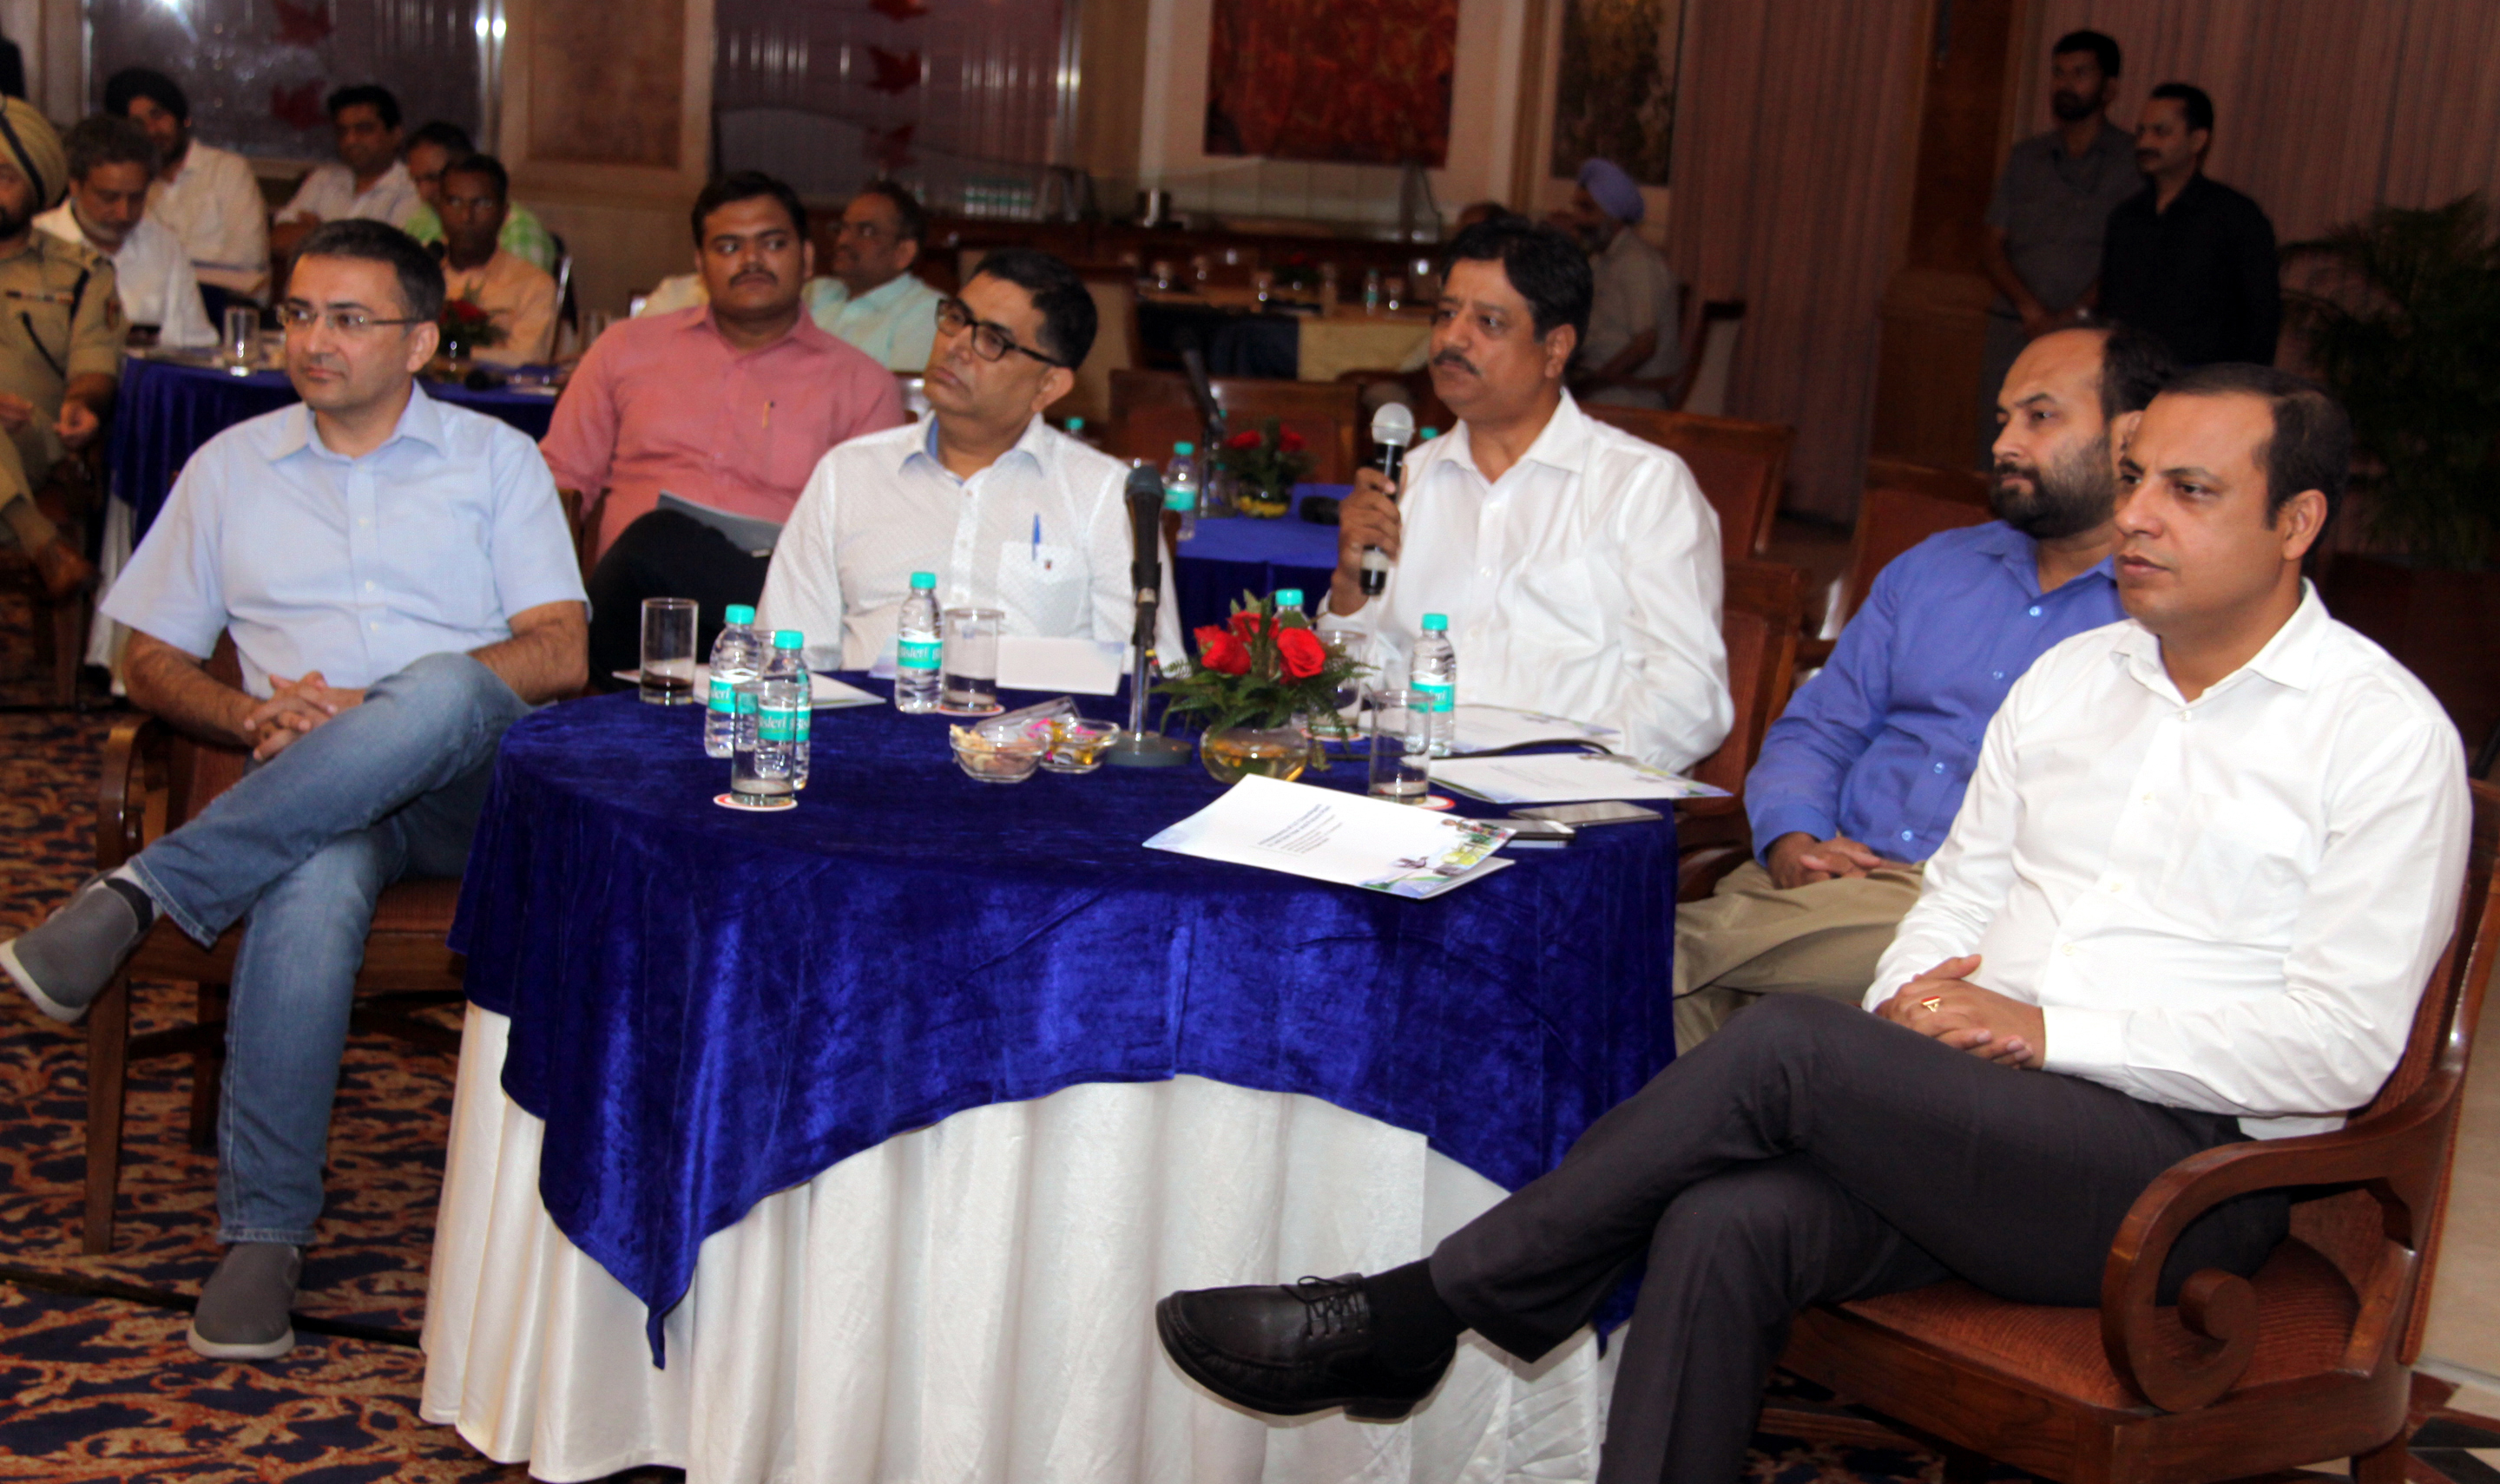 Editors of various newspapers and news channels interacting  with the Governor of Punjab and Administrator, UT, Chandigarh, Shri V.P. Singh Badnore alongwith Smt. Kirron Kher, Member of Parliament, Chandigarh at an informal meet at Hotel Mountview, Sector-10, Chandigarh on Wednesday, August 23, 2017.